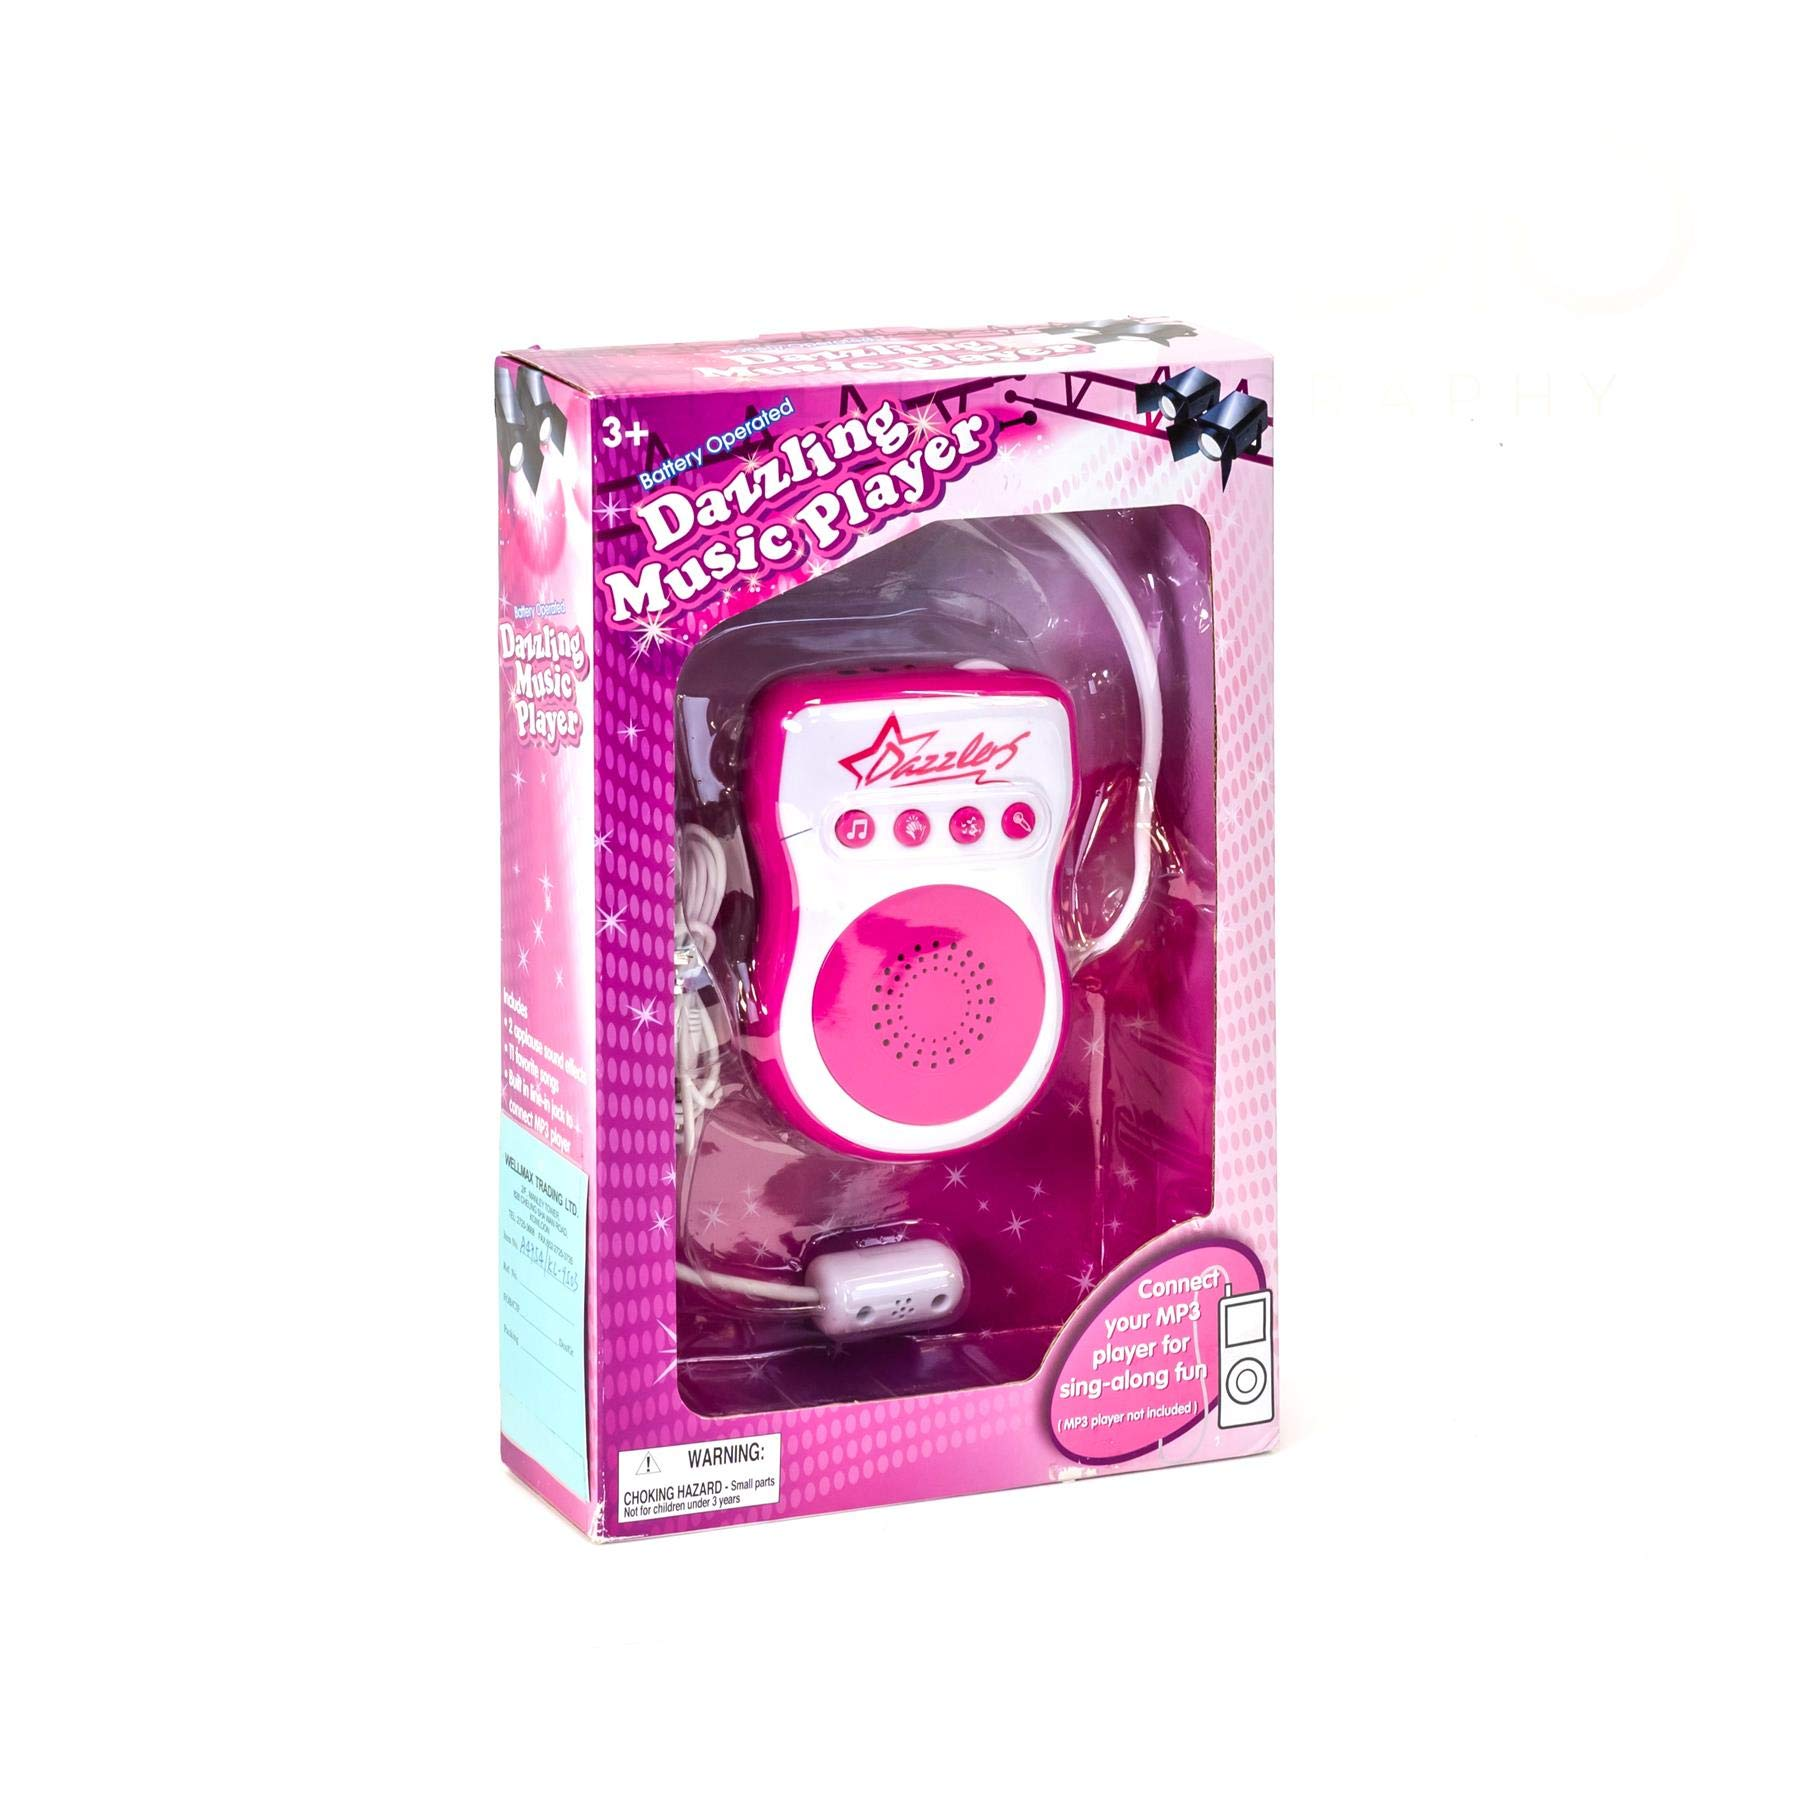 Headset Microphone Dazzling Music Player MP3 Sing Along Gift for Girls +4 by Buyer (Image #1)